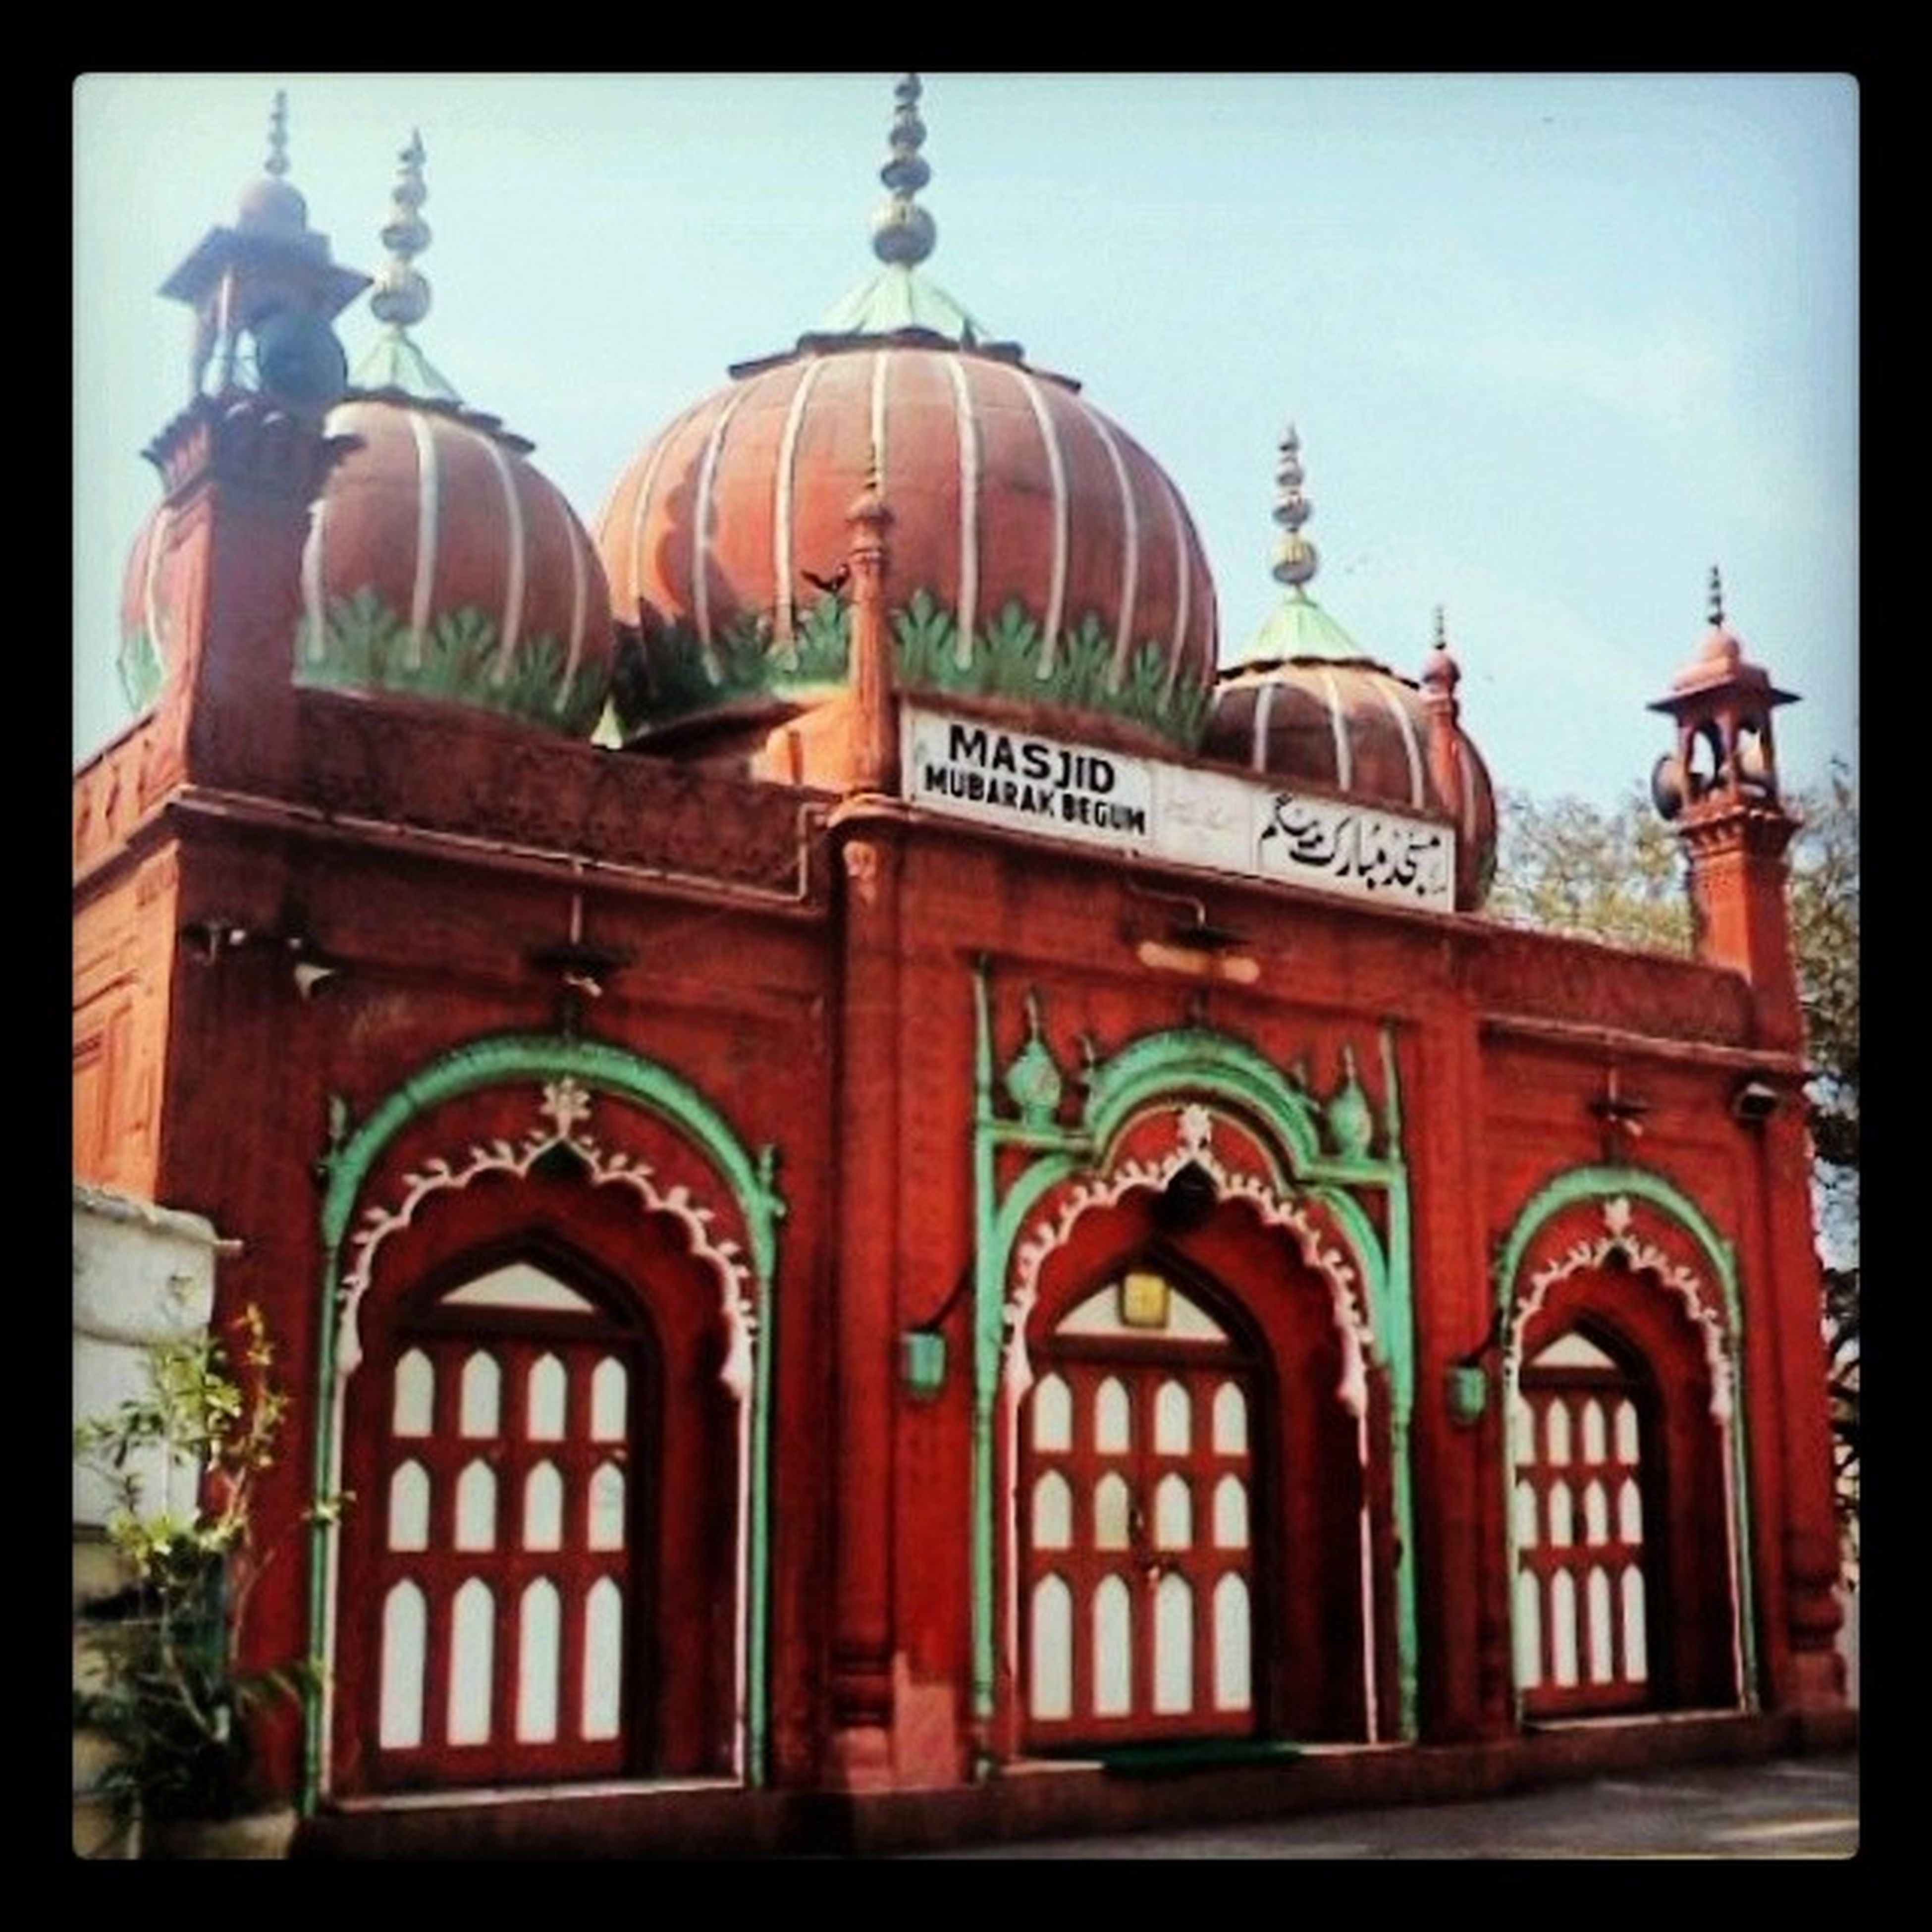 MasjidMubarakBegum , or R**** Ki Masjid. Built in 1823, the Mosque was Named after one of the 13 wives of SirDavidOchterlony , Delhi's first British Resident, who was known for his passion for Nautch Girls, Hukkas and Indian Costumes. MubarakBegum, a Brahmin Dancing girl from Pune, was a convert to Islam. Besides being the favourite wife (some say she was just a mistress) of Sir Ochterlony, It is not clear if the Mosque was commissioned by Mubarak Begum or was built in her honour. It's crudely nicknamed R**** ki Masjid LalKuan olddelhi DelhiHeritage Monument DelhiSecret